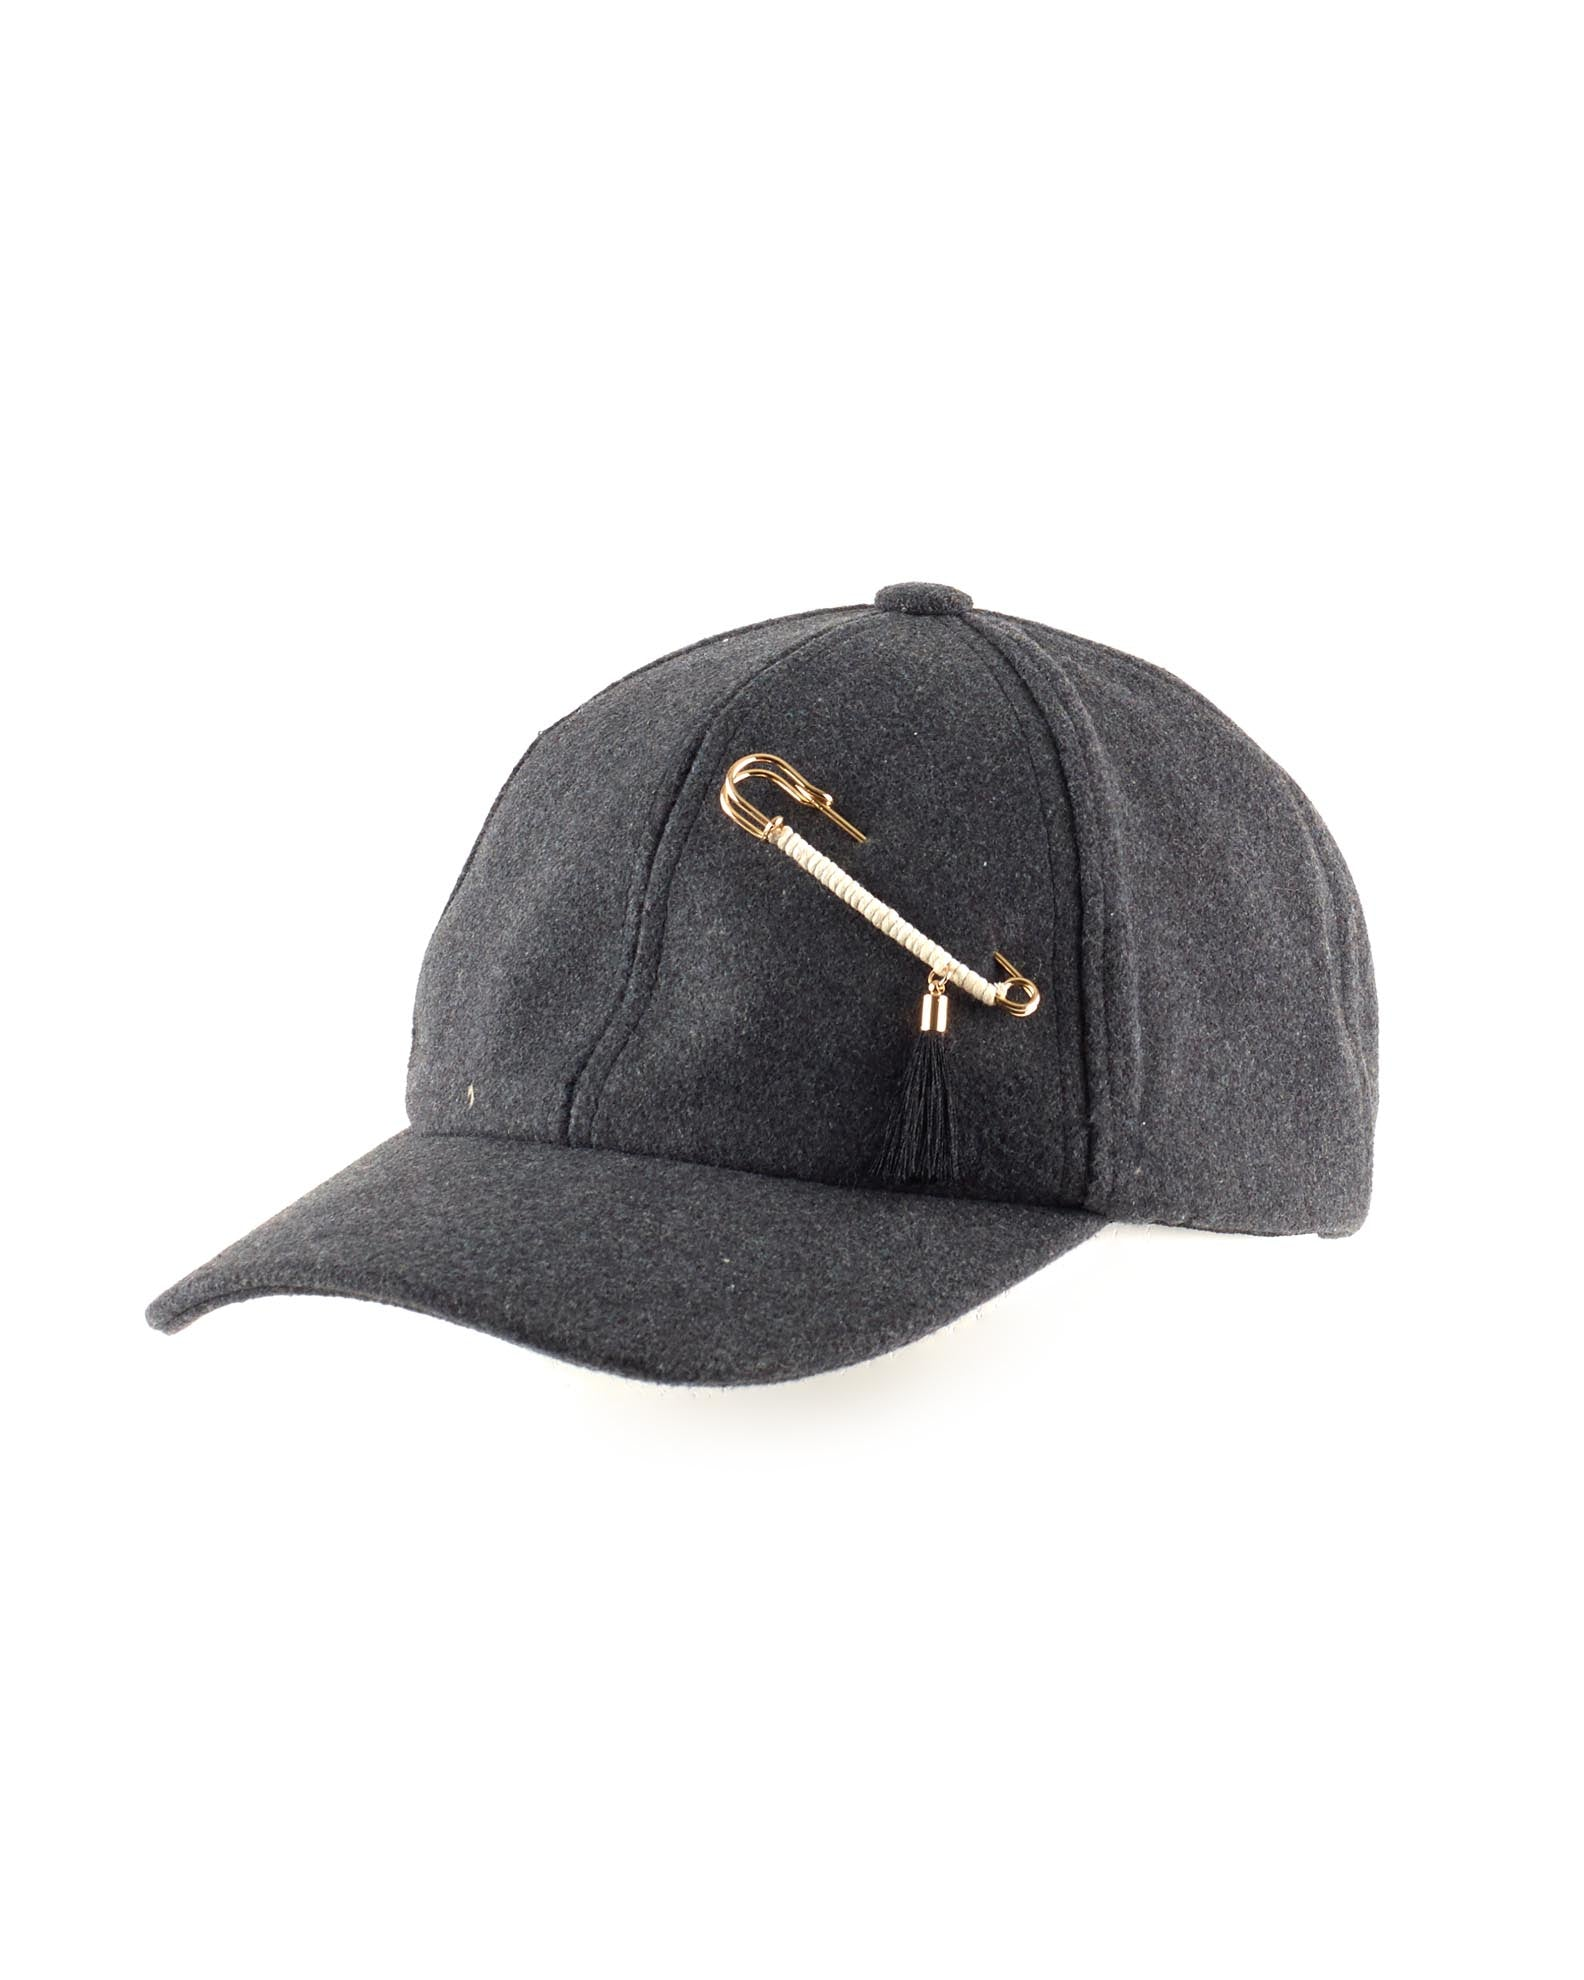 Black - Solid Baseball Hat